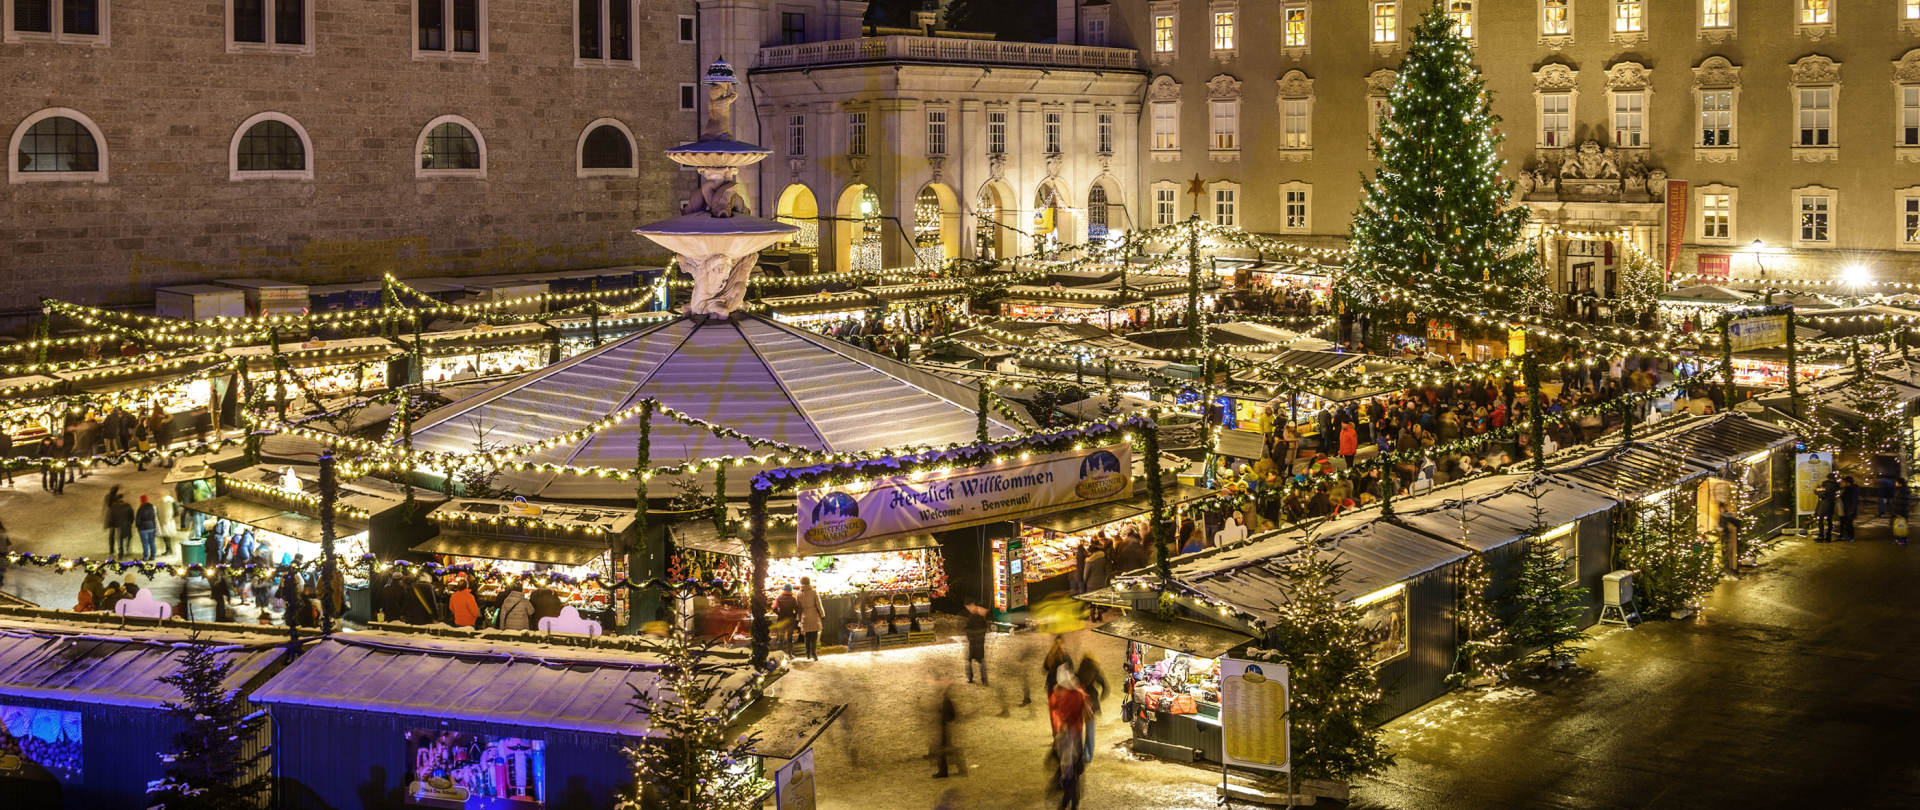 Salzburg Christmas Market 2019 Christmas market in Salzburg   Package for your Salzburg stay